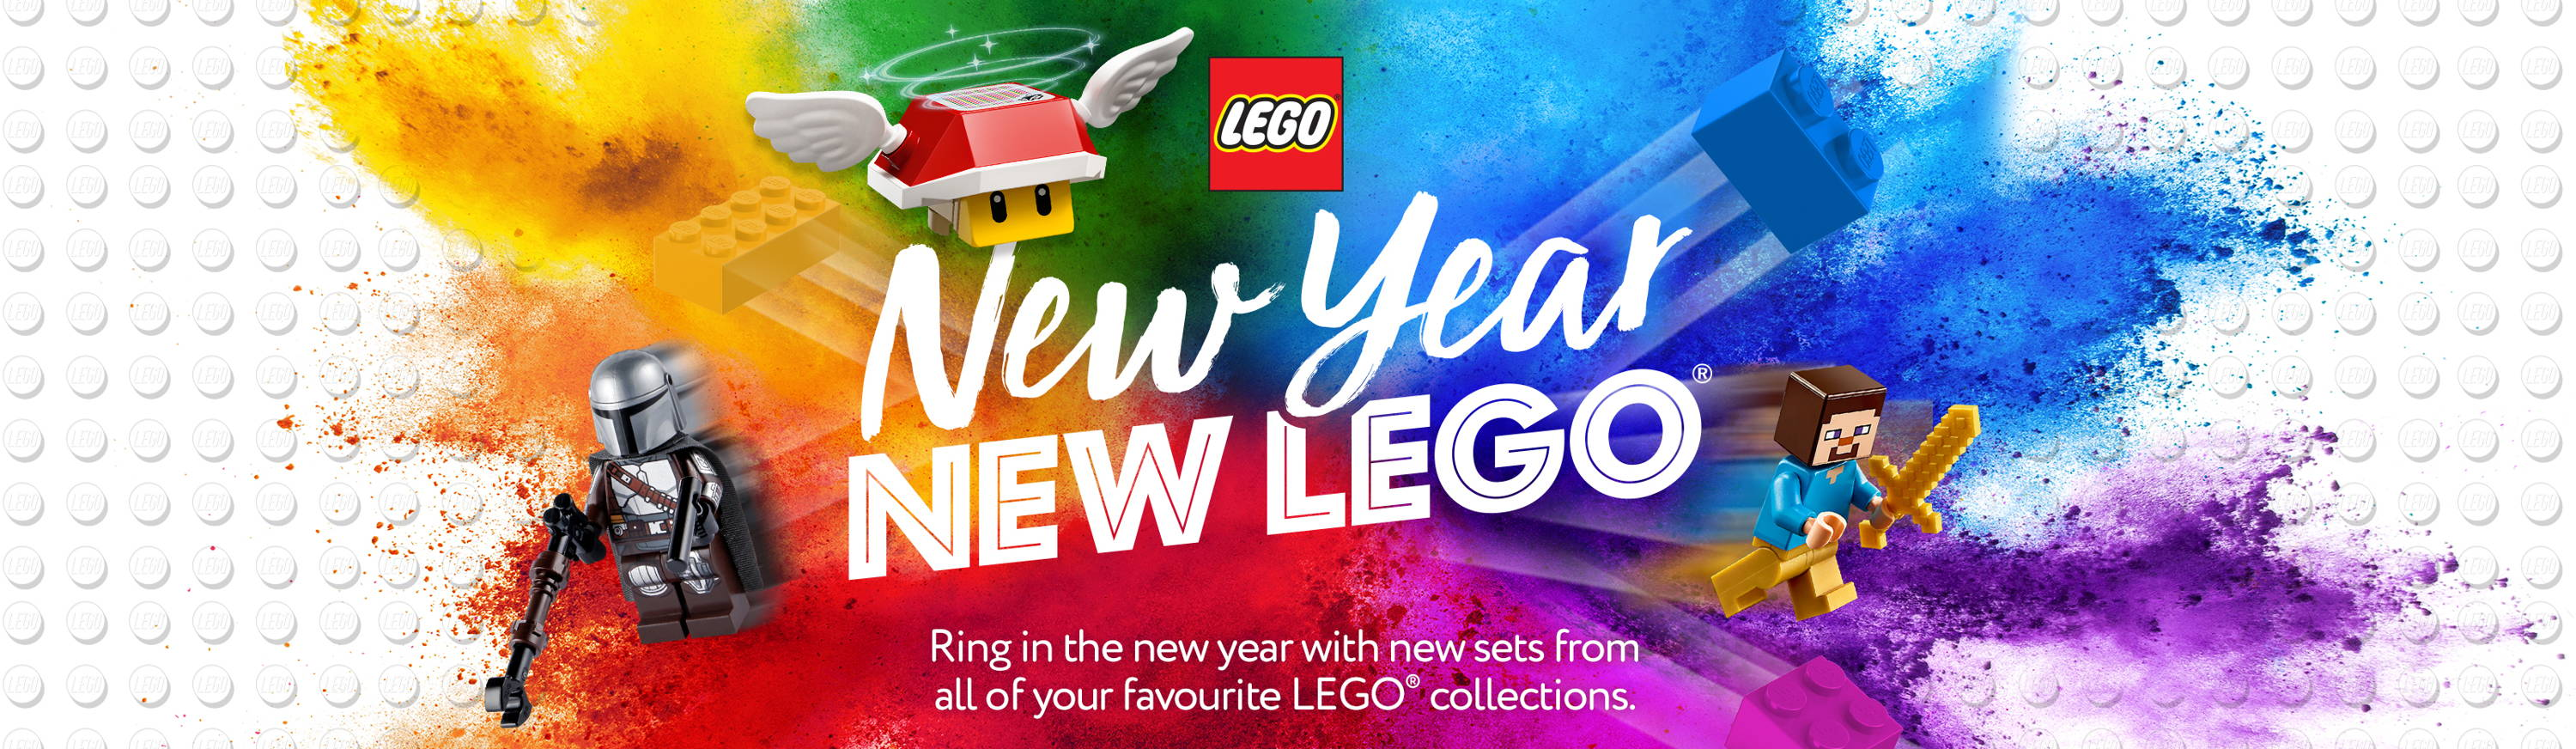 New Year, New LEGO